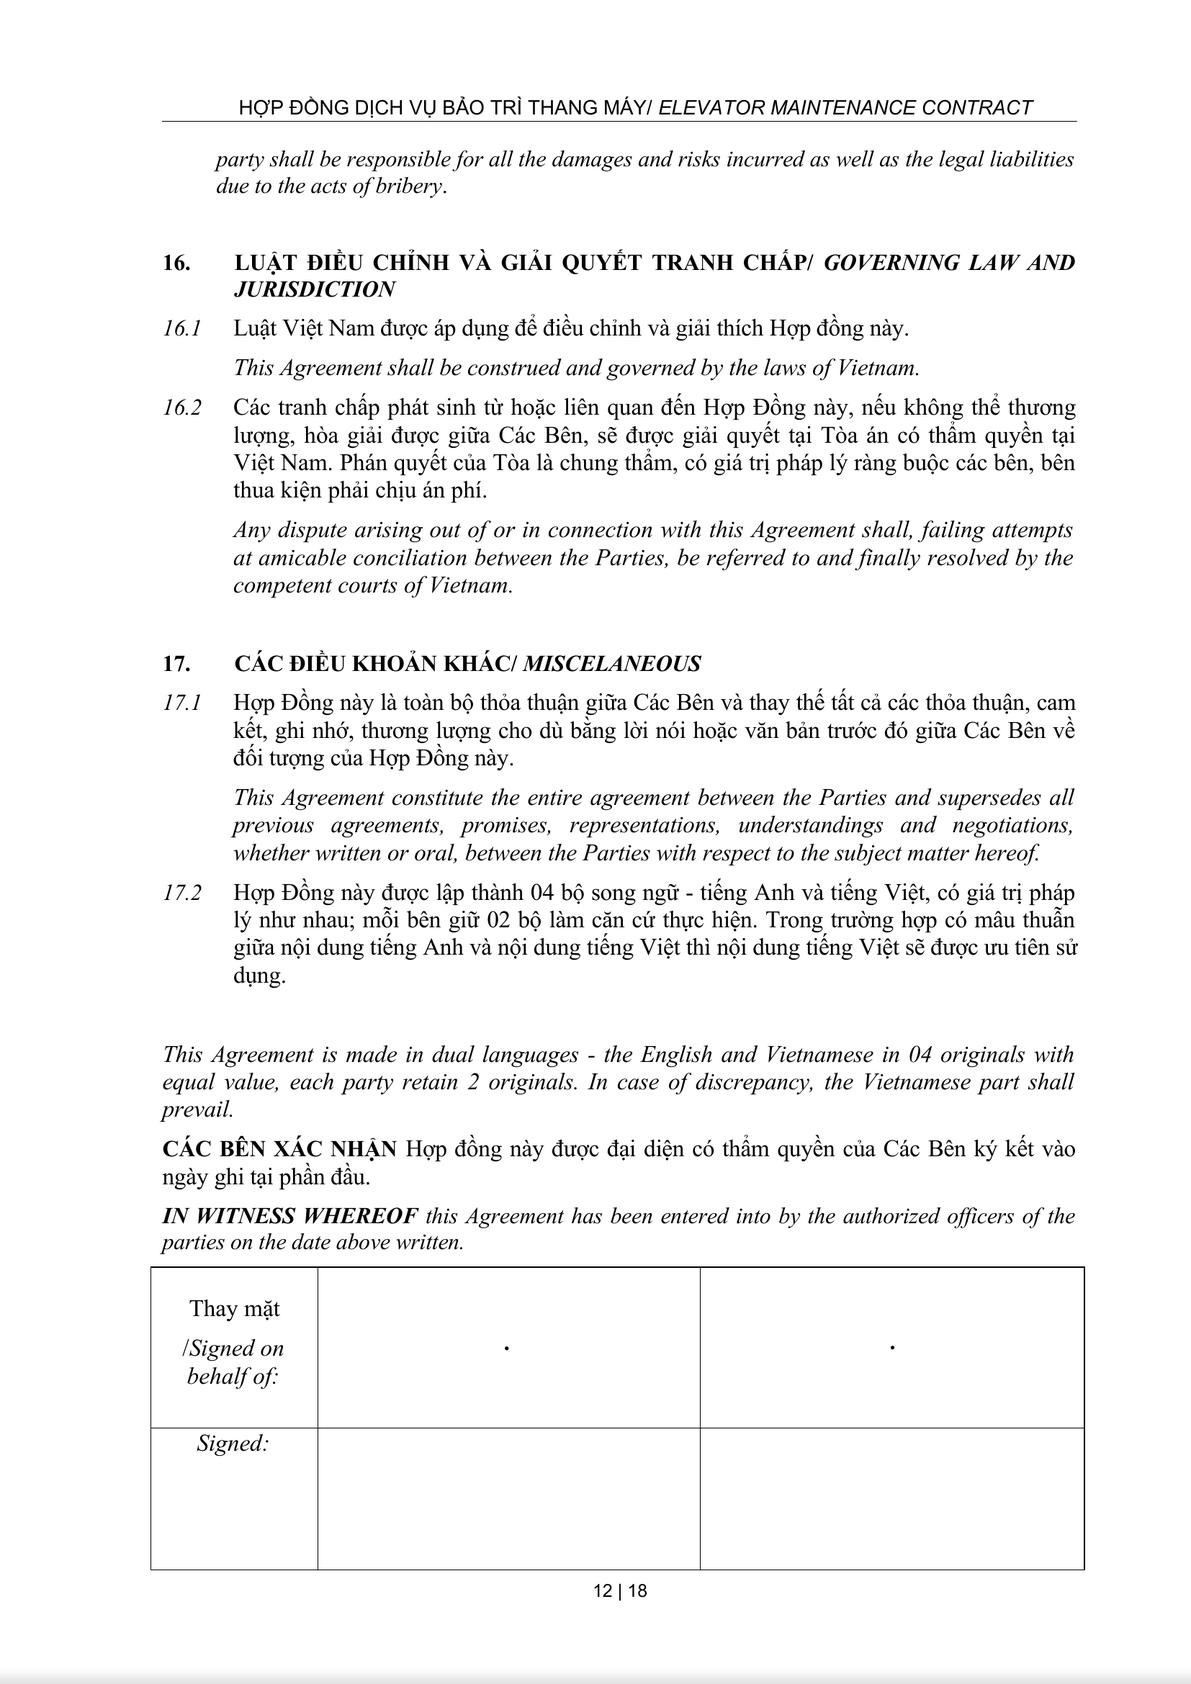 Maintenance Service Agreement-11